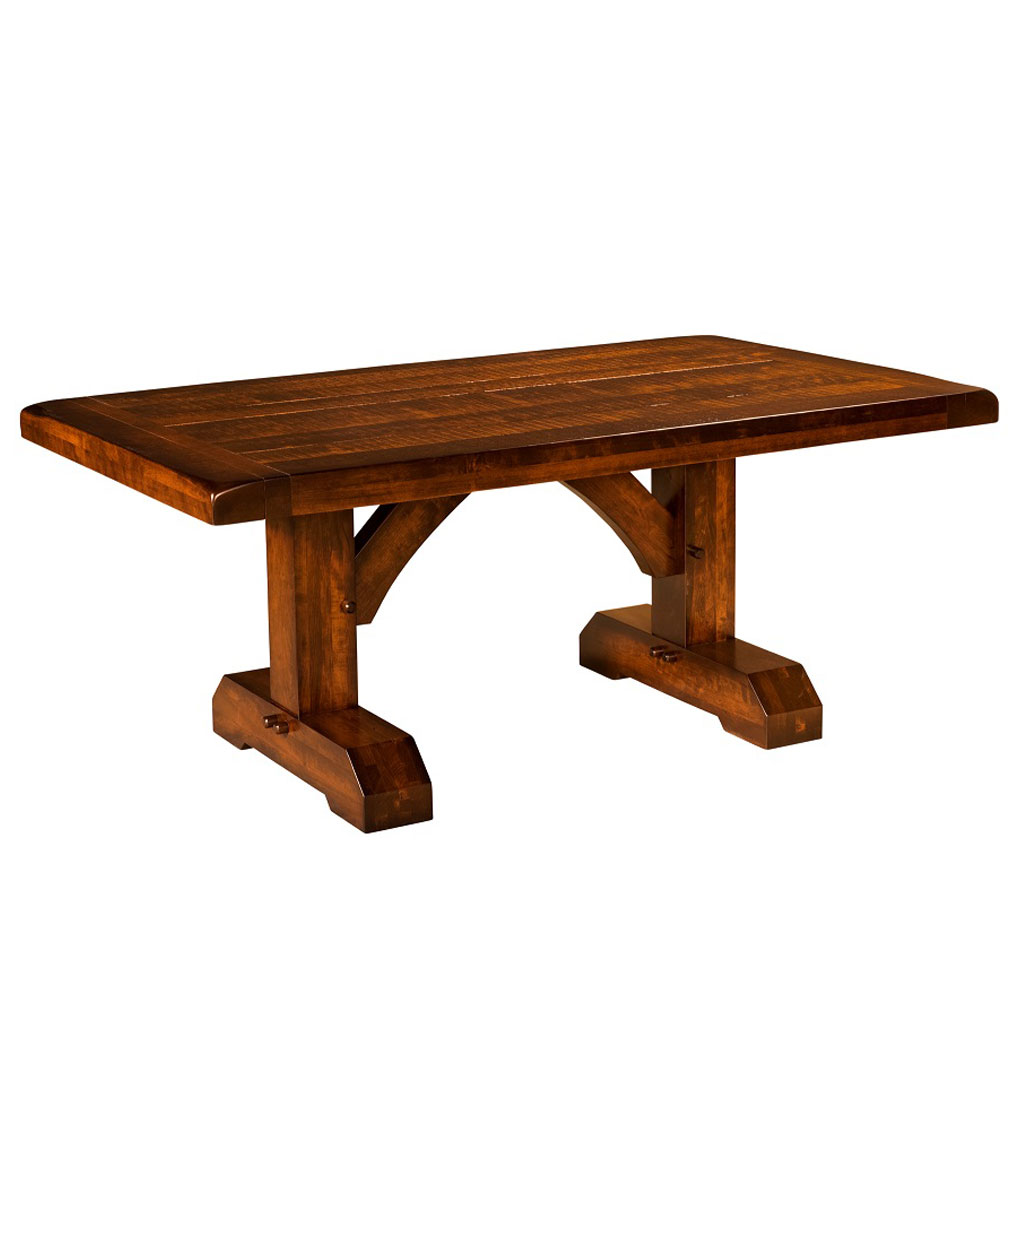 Image Result For Where Can I Get A Piece Of Wood Cut